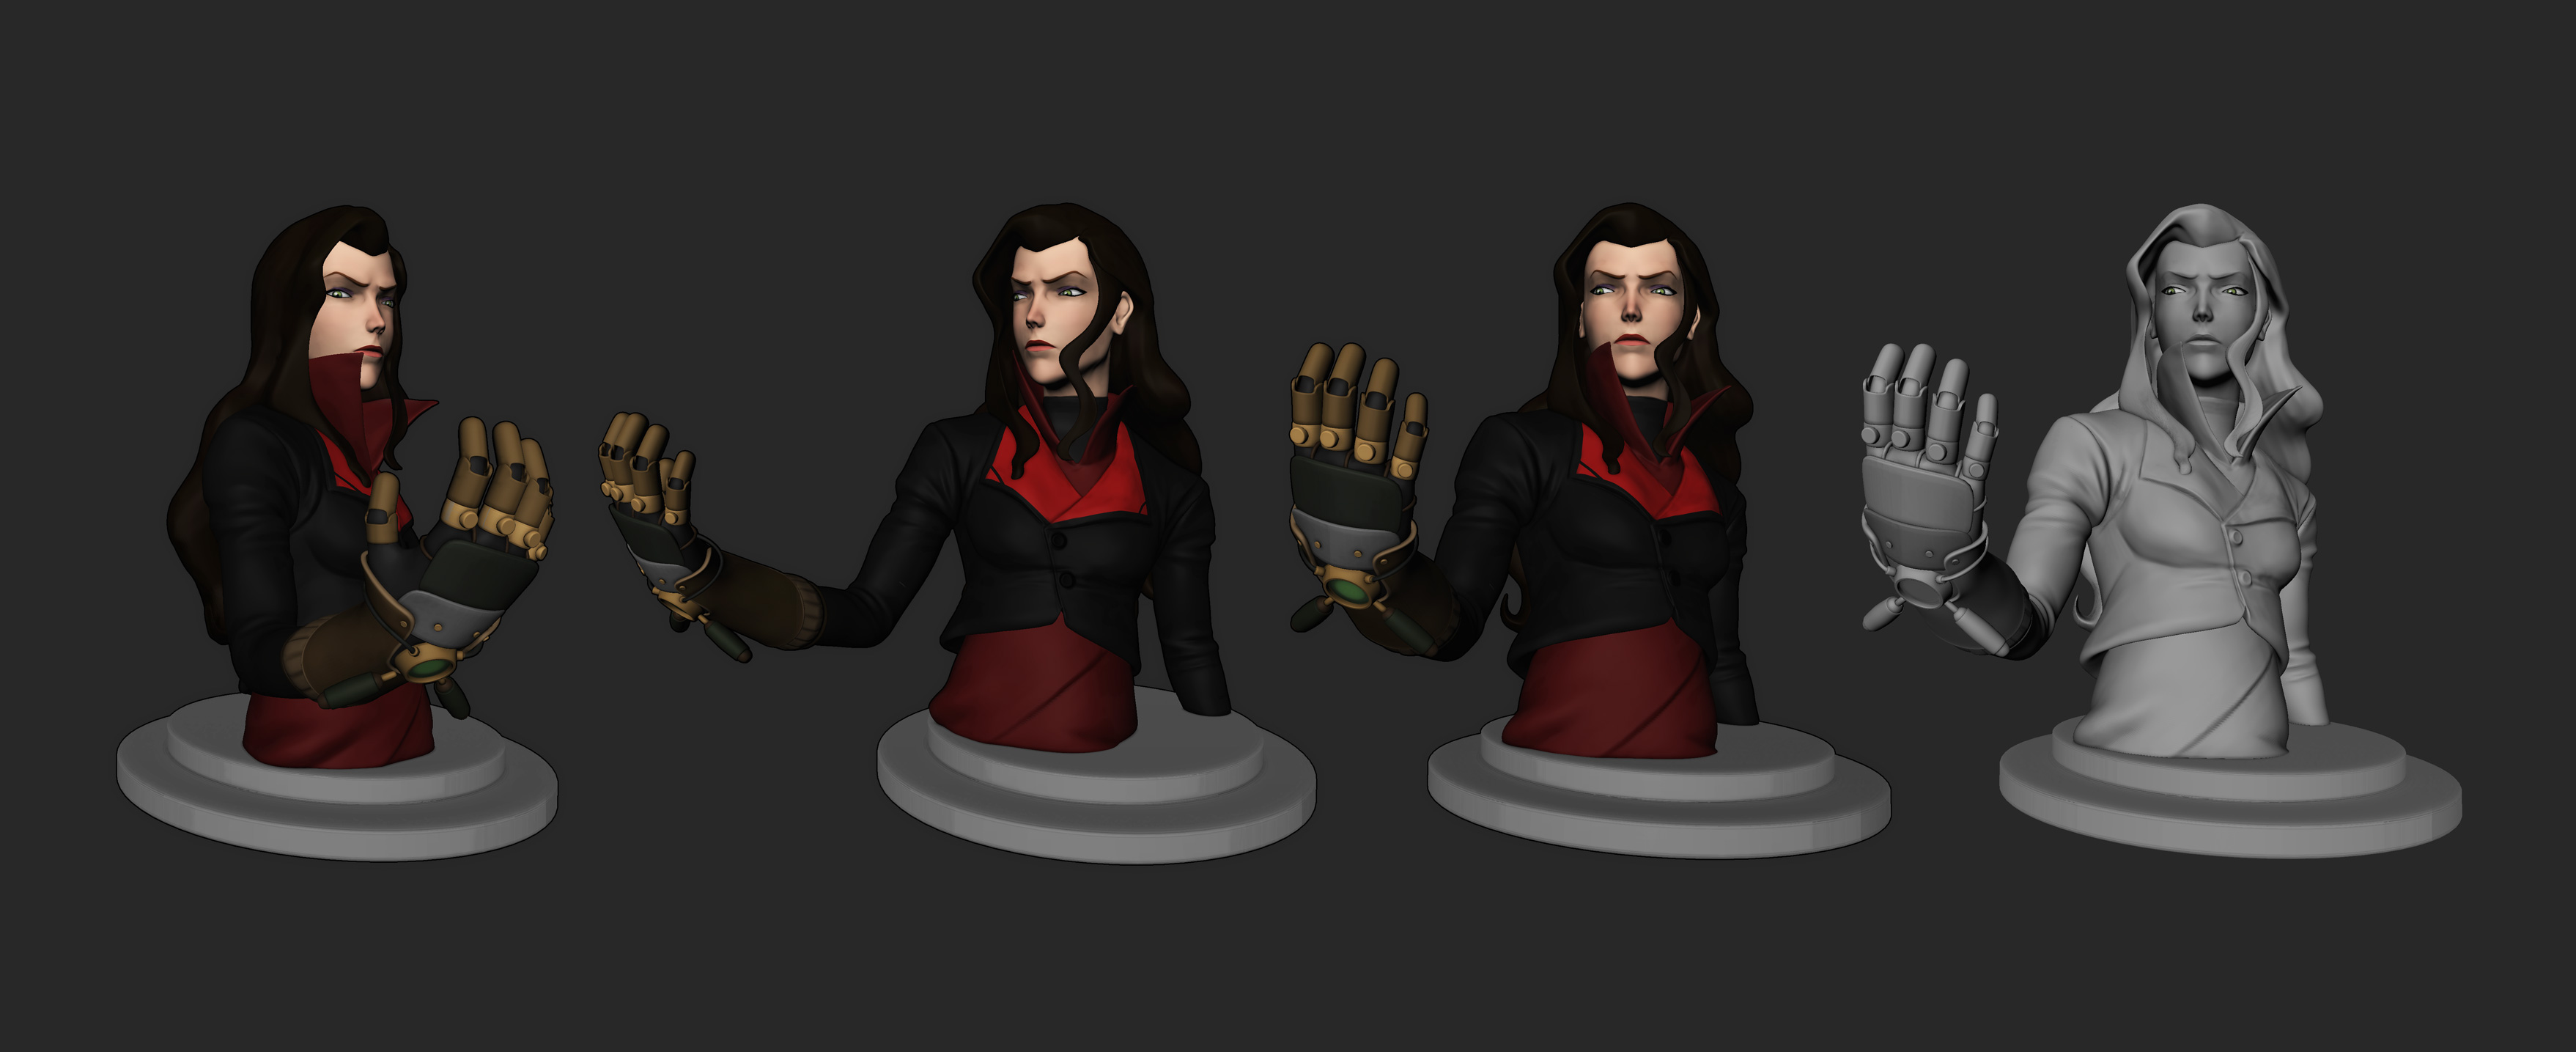 _wip_3__asami_sato___the_legend_of_korra_by_yuliuskrisna-d8capxu.jpg